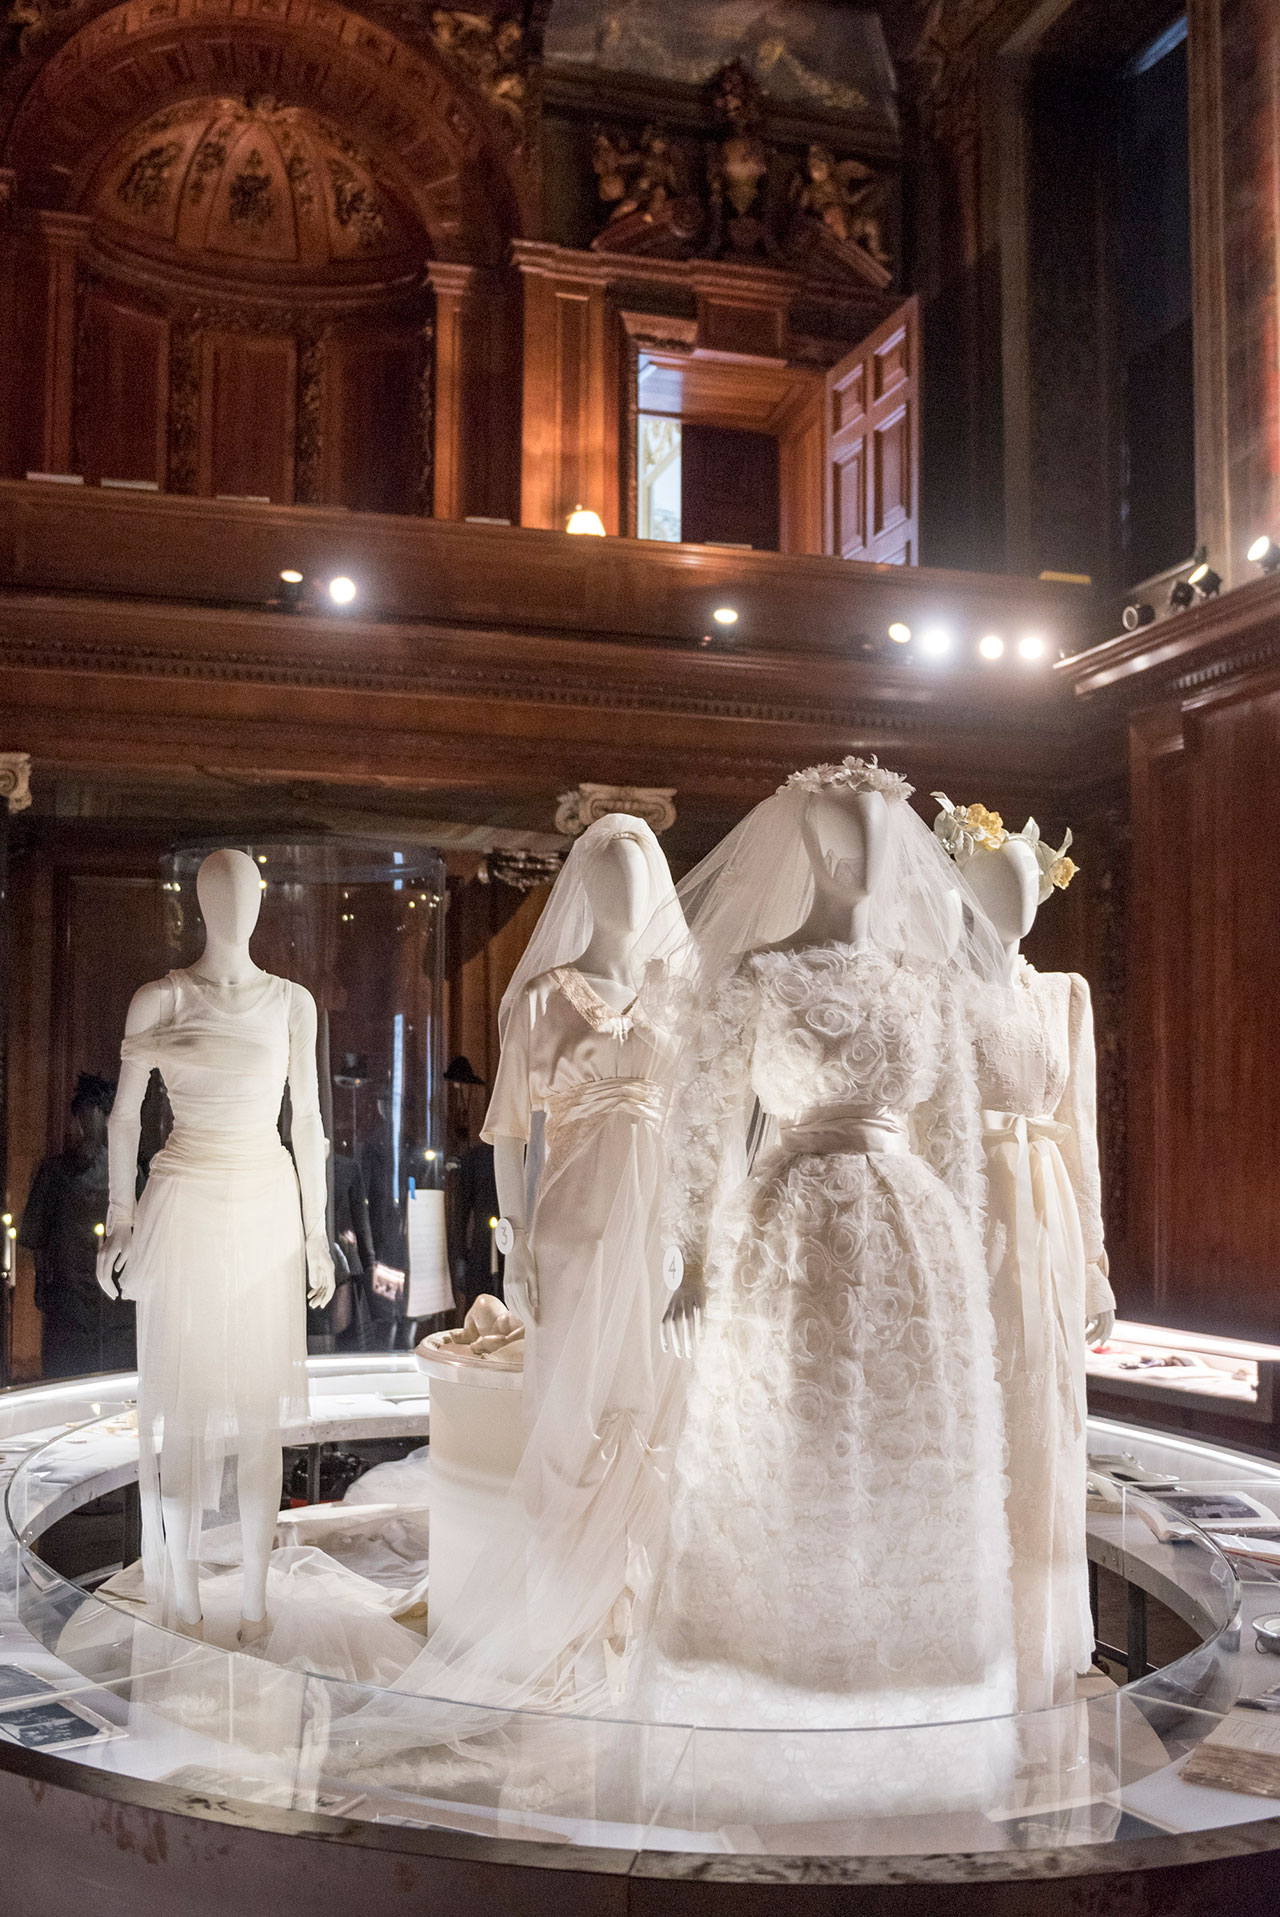 Wedding dresses of the family in the Chapel, part of the Circle of Life display. Photo courtesy Chatsworth House Trust.